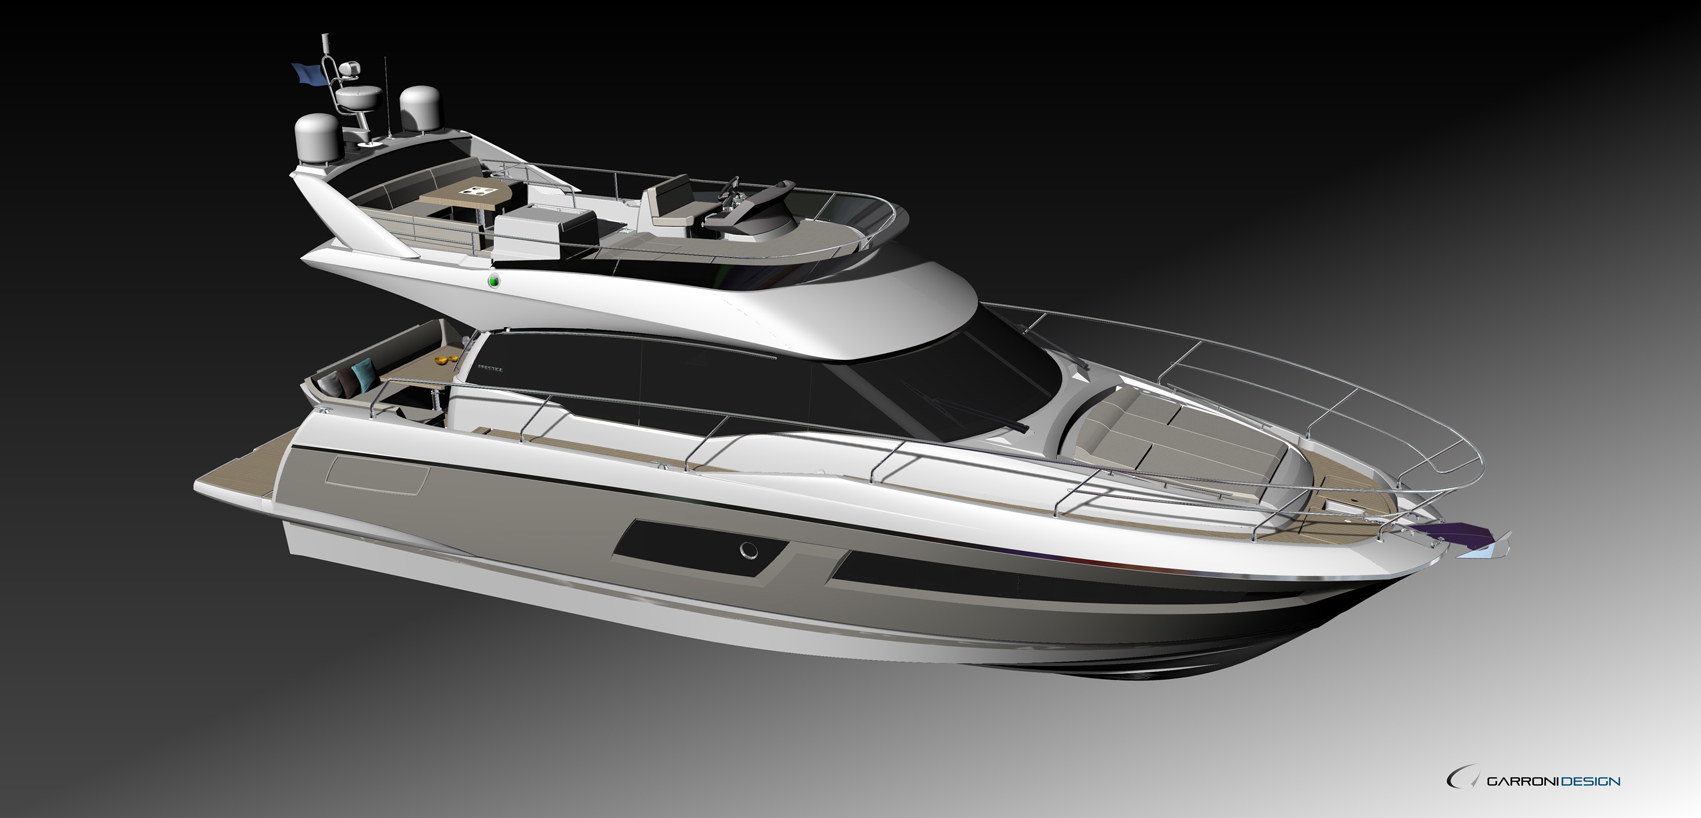 Ancasta unveils plans for new Prestige 460